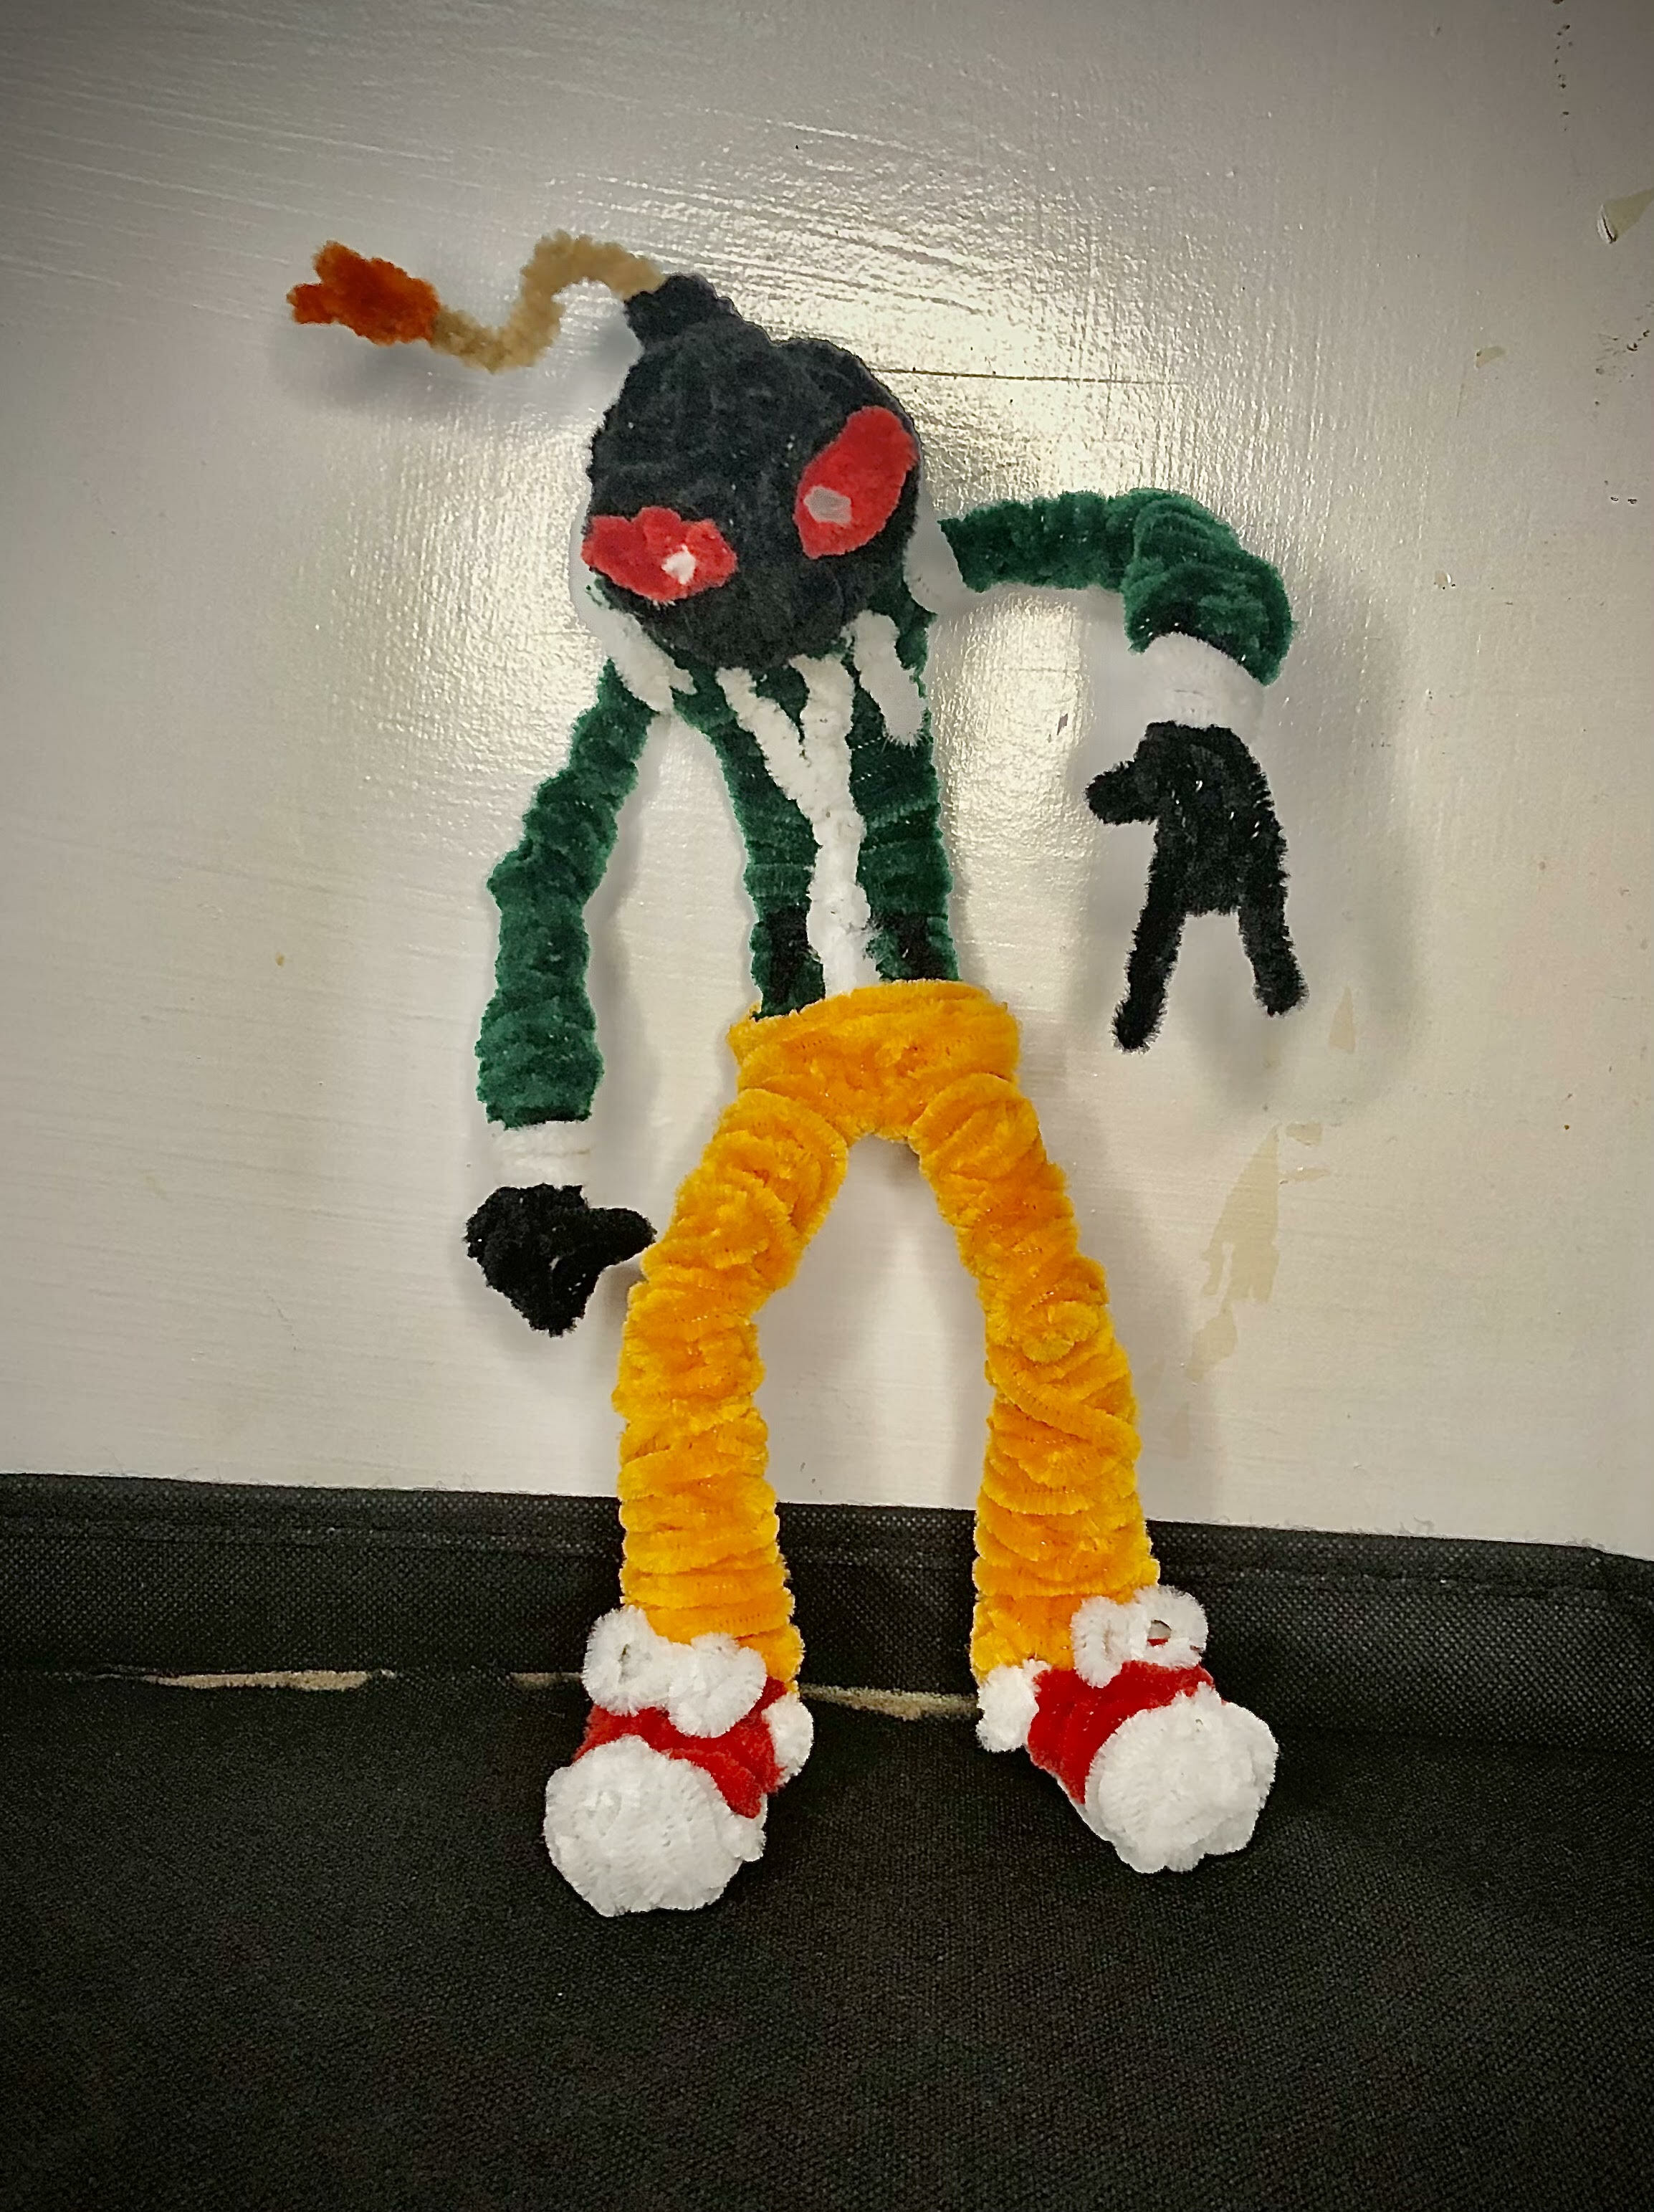 Whitty pipe cleaner